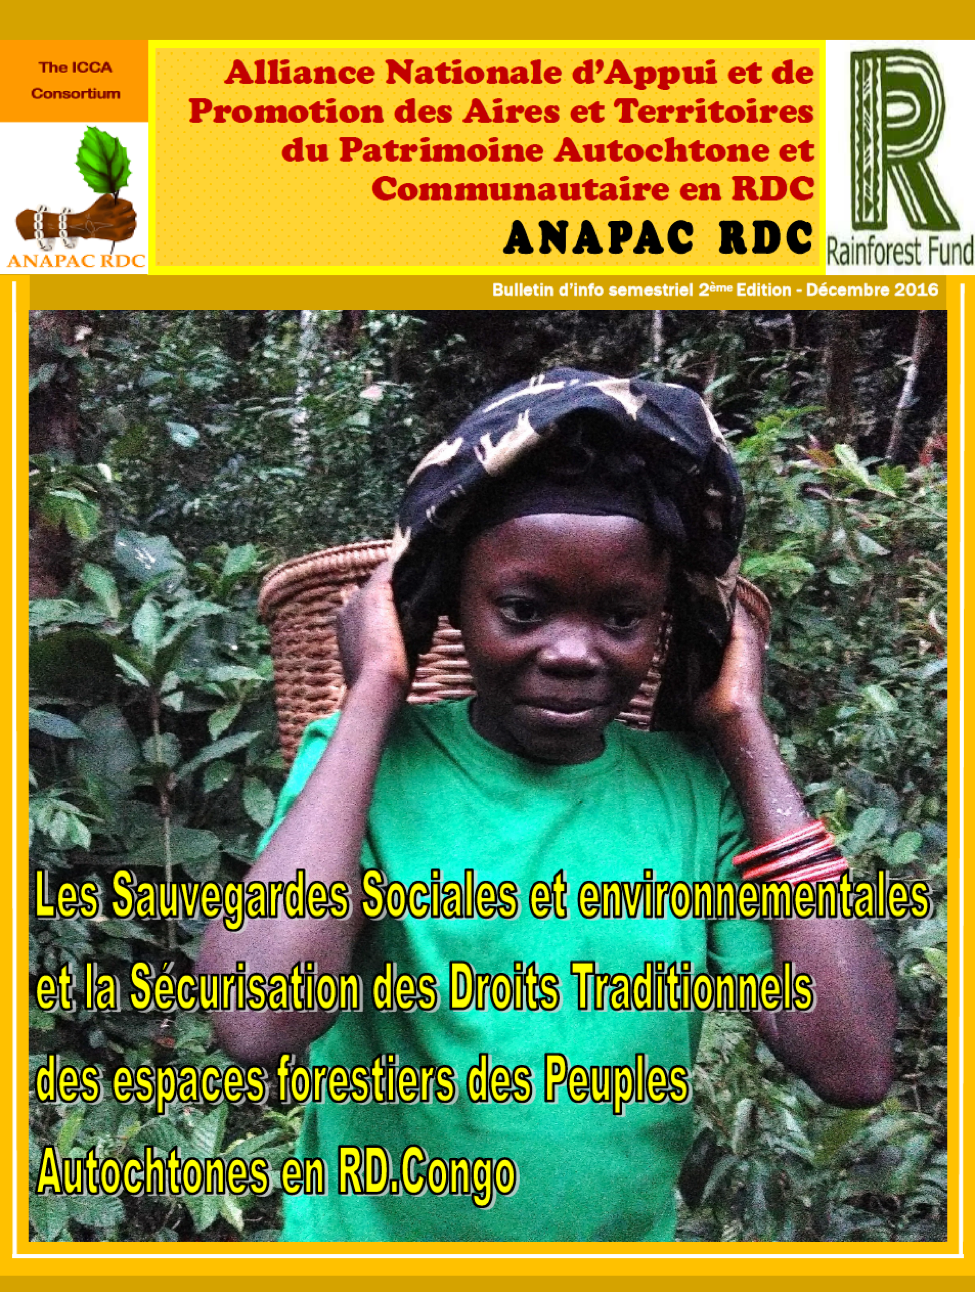 Newsletter from the National Alliance for the Support and Promotion of the ICCAs in Democratic Republic of Congo (ANAPAC) December 2016 Edition